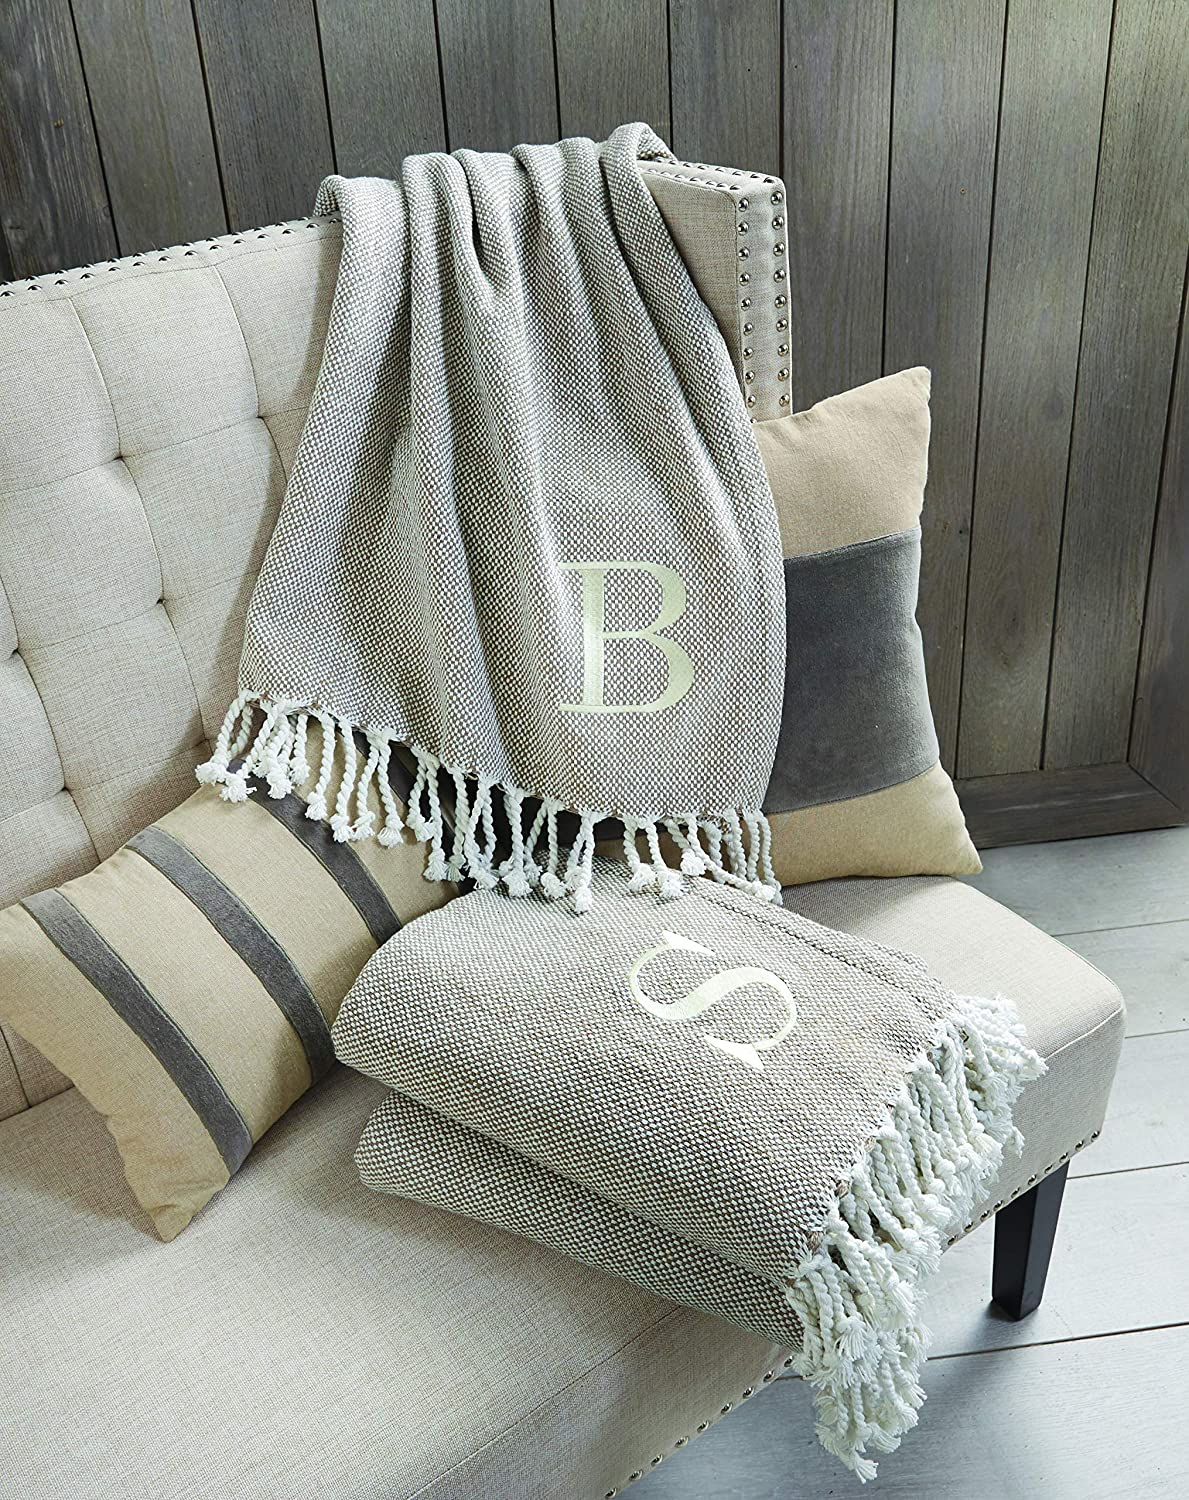 Shop Mud Pie Woven Cotton Initial W Throw Blanket, Taupe from Amazon on Openhaus